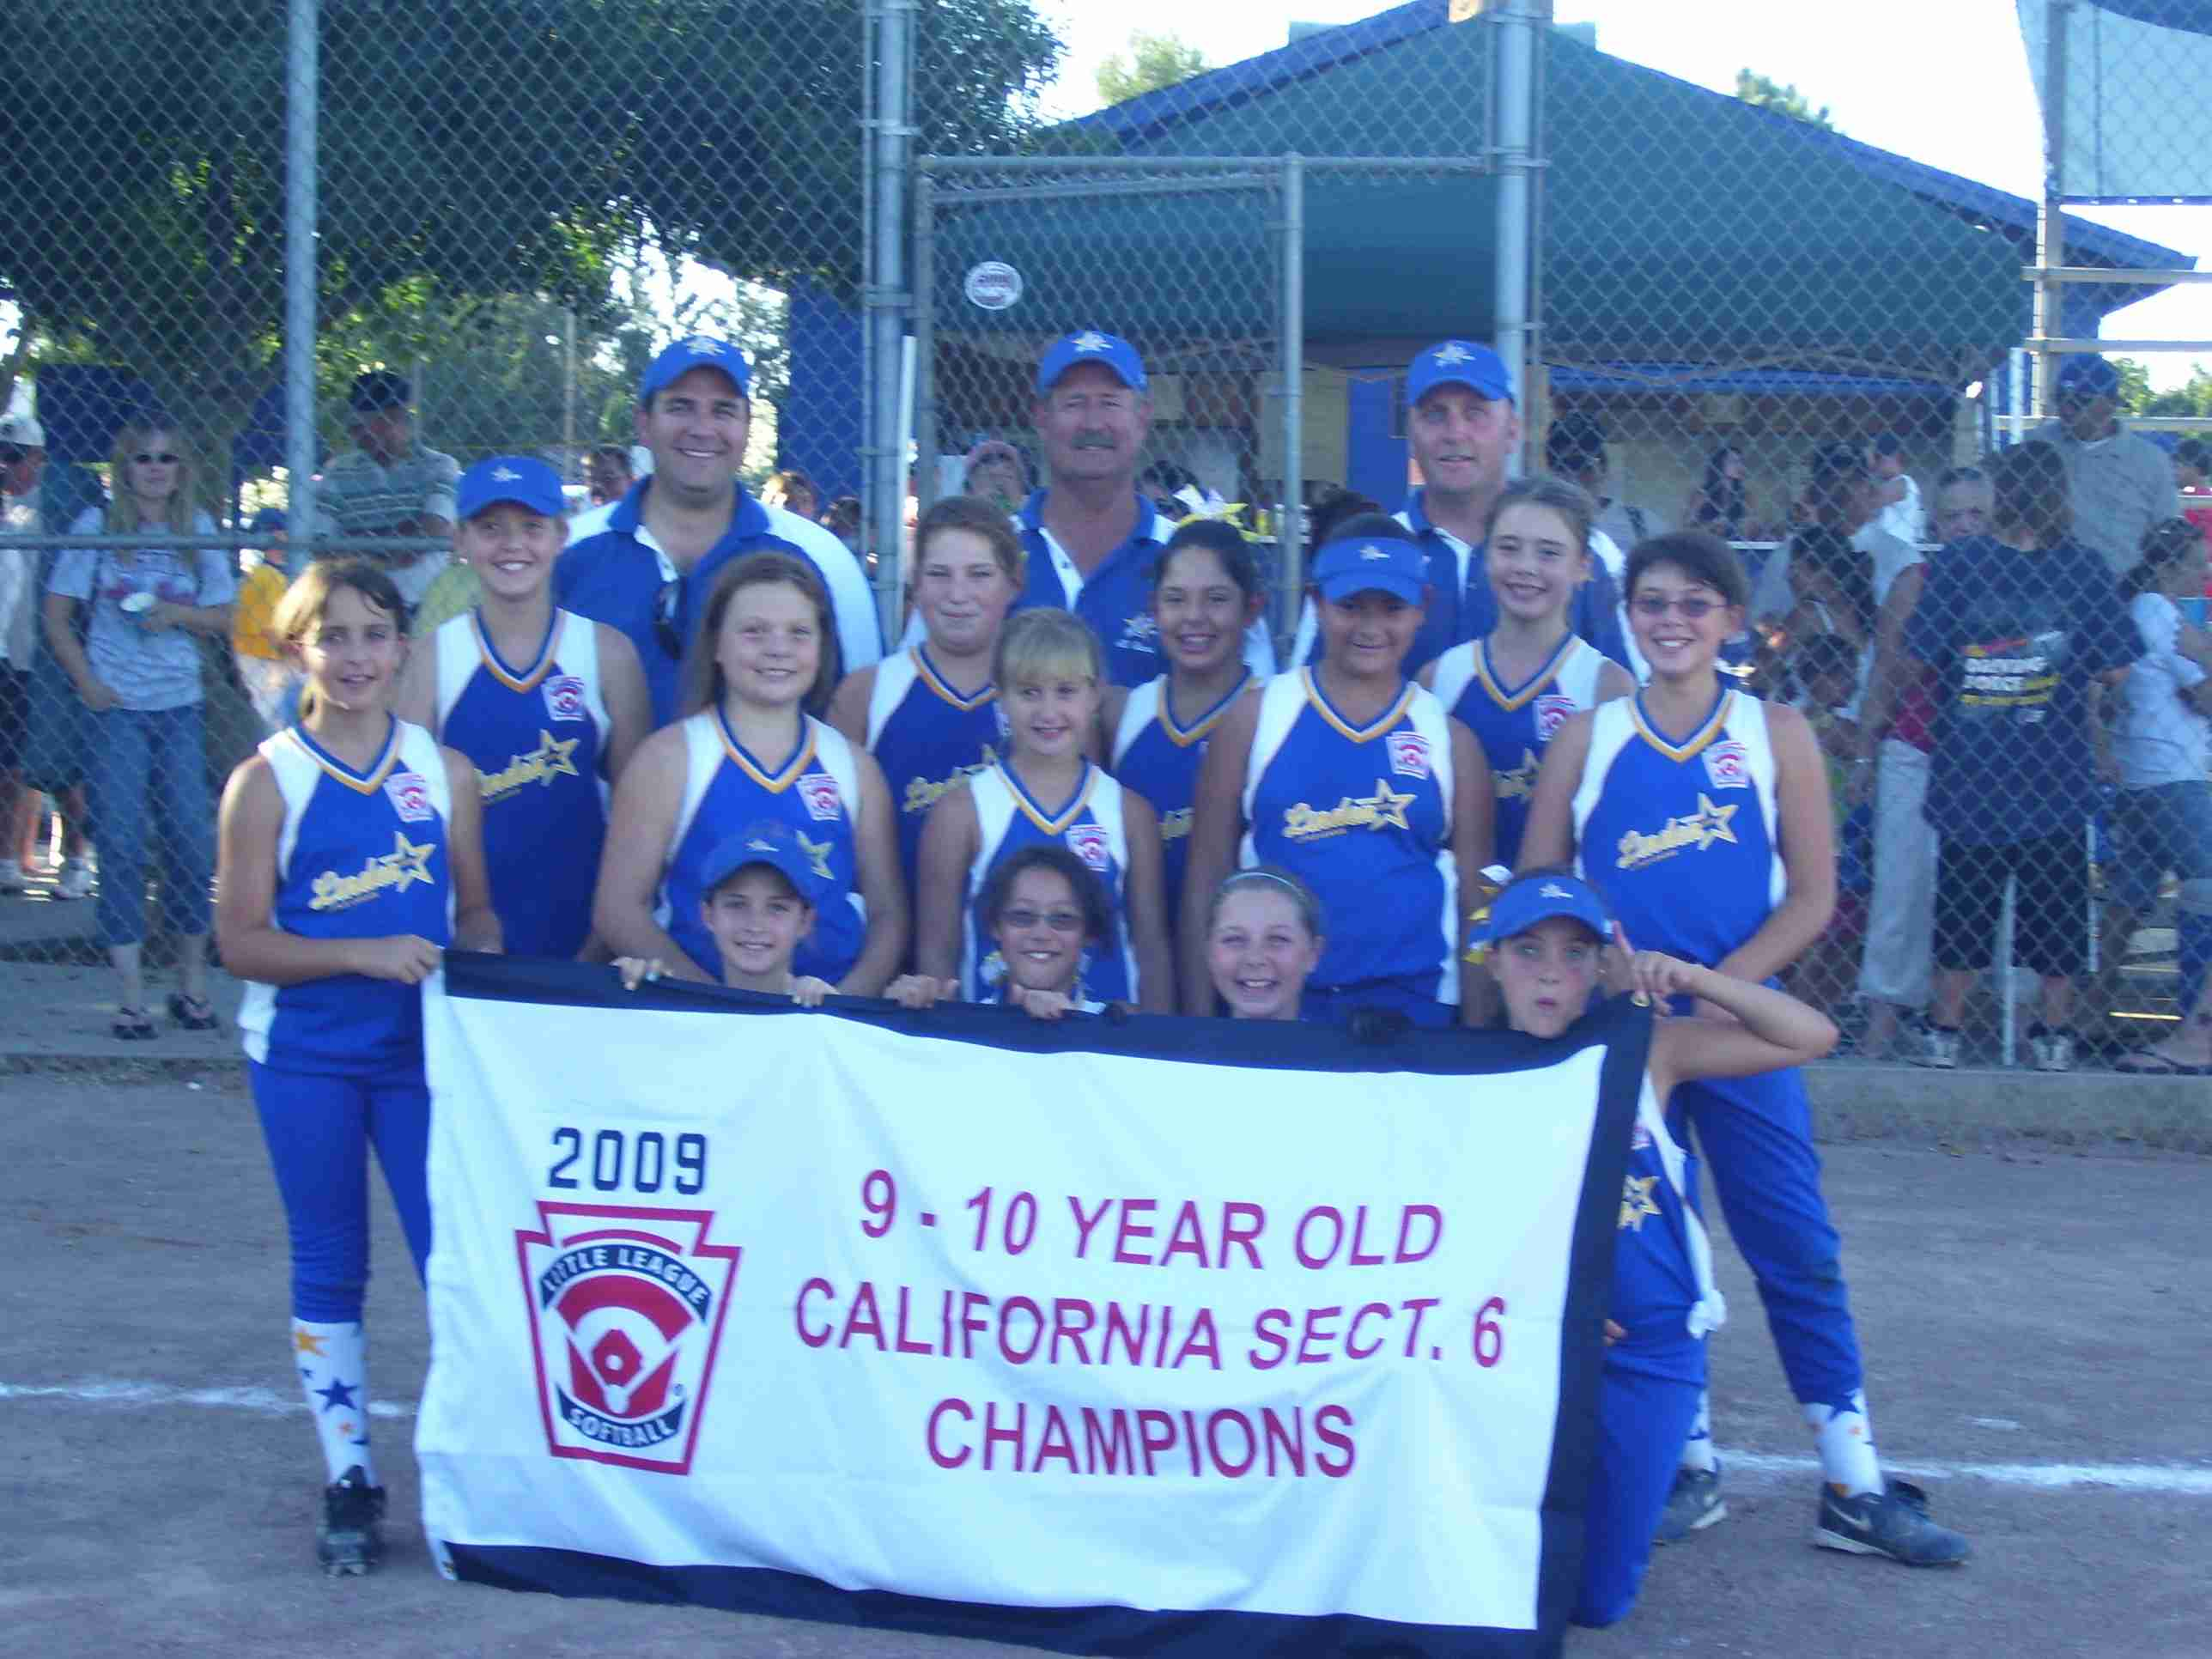 9 & 10 yr old Section 6 Champions